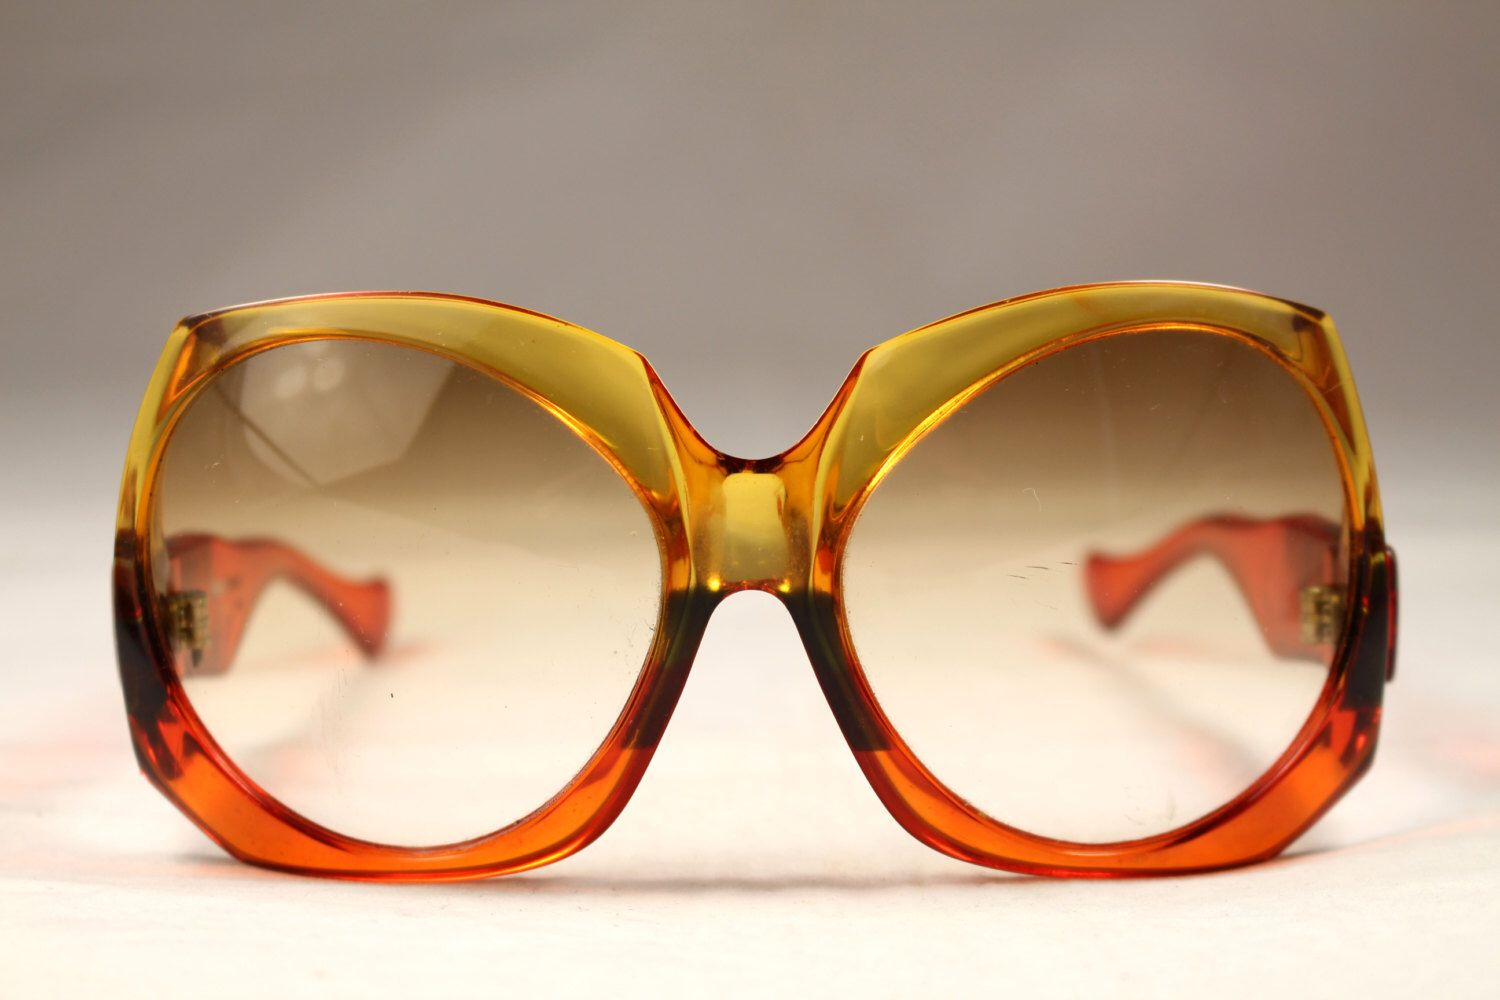 Vintage 70s Sunglasses Yves Saint Laurent Translucent Orange Color by  VintageCarwen on Etsy https:/